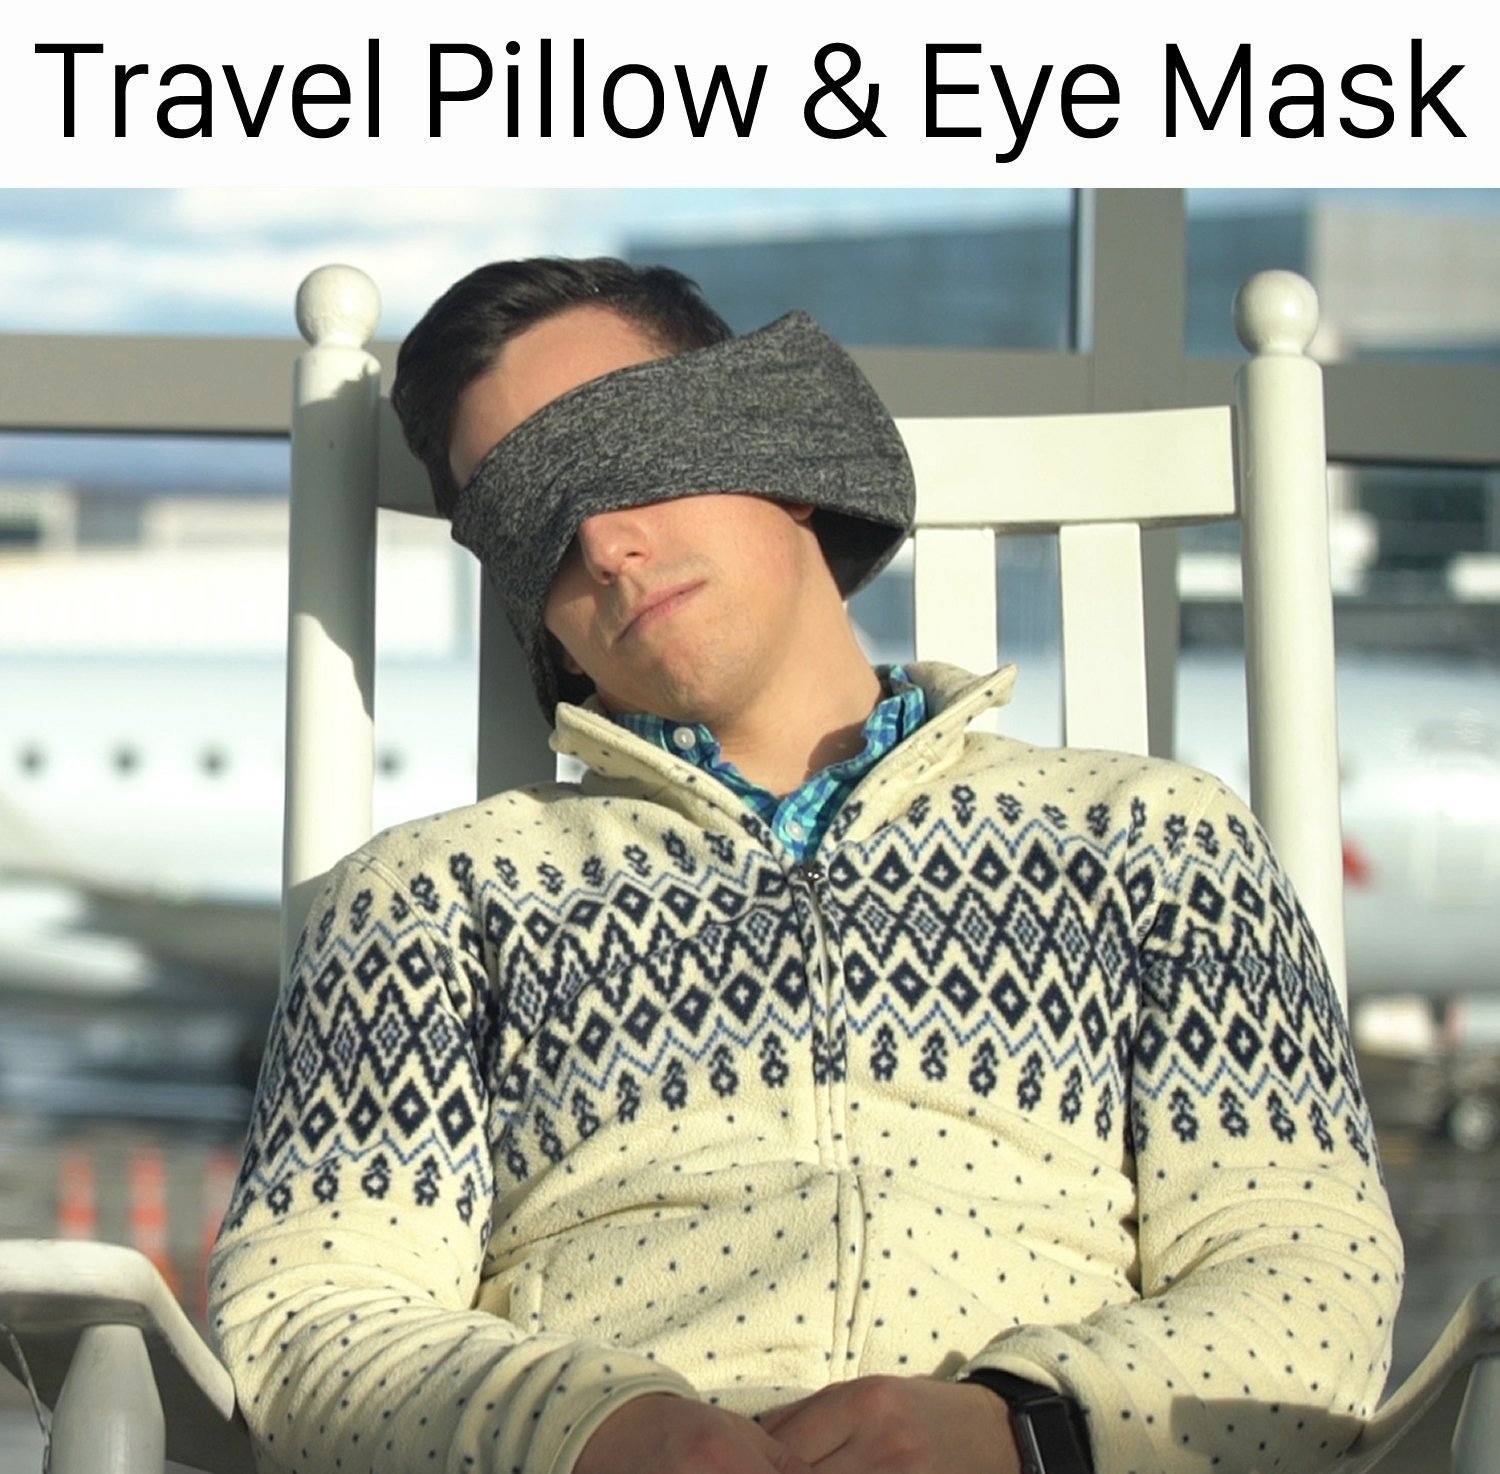 Goggles Neck Support Pillow Portable Travel Compact Pillow And Eye Mask 2 in 1-soft For Airplane Napping Trip Supplies Customized Sleep Positions